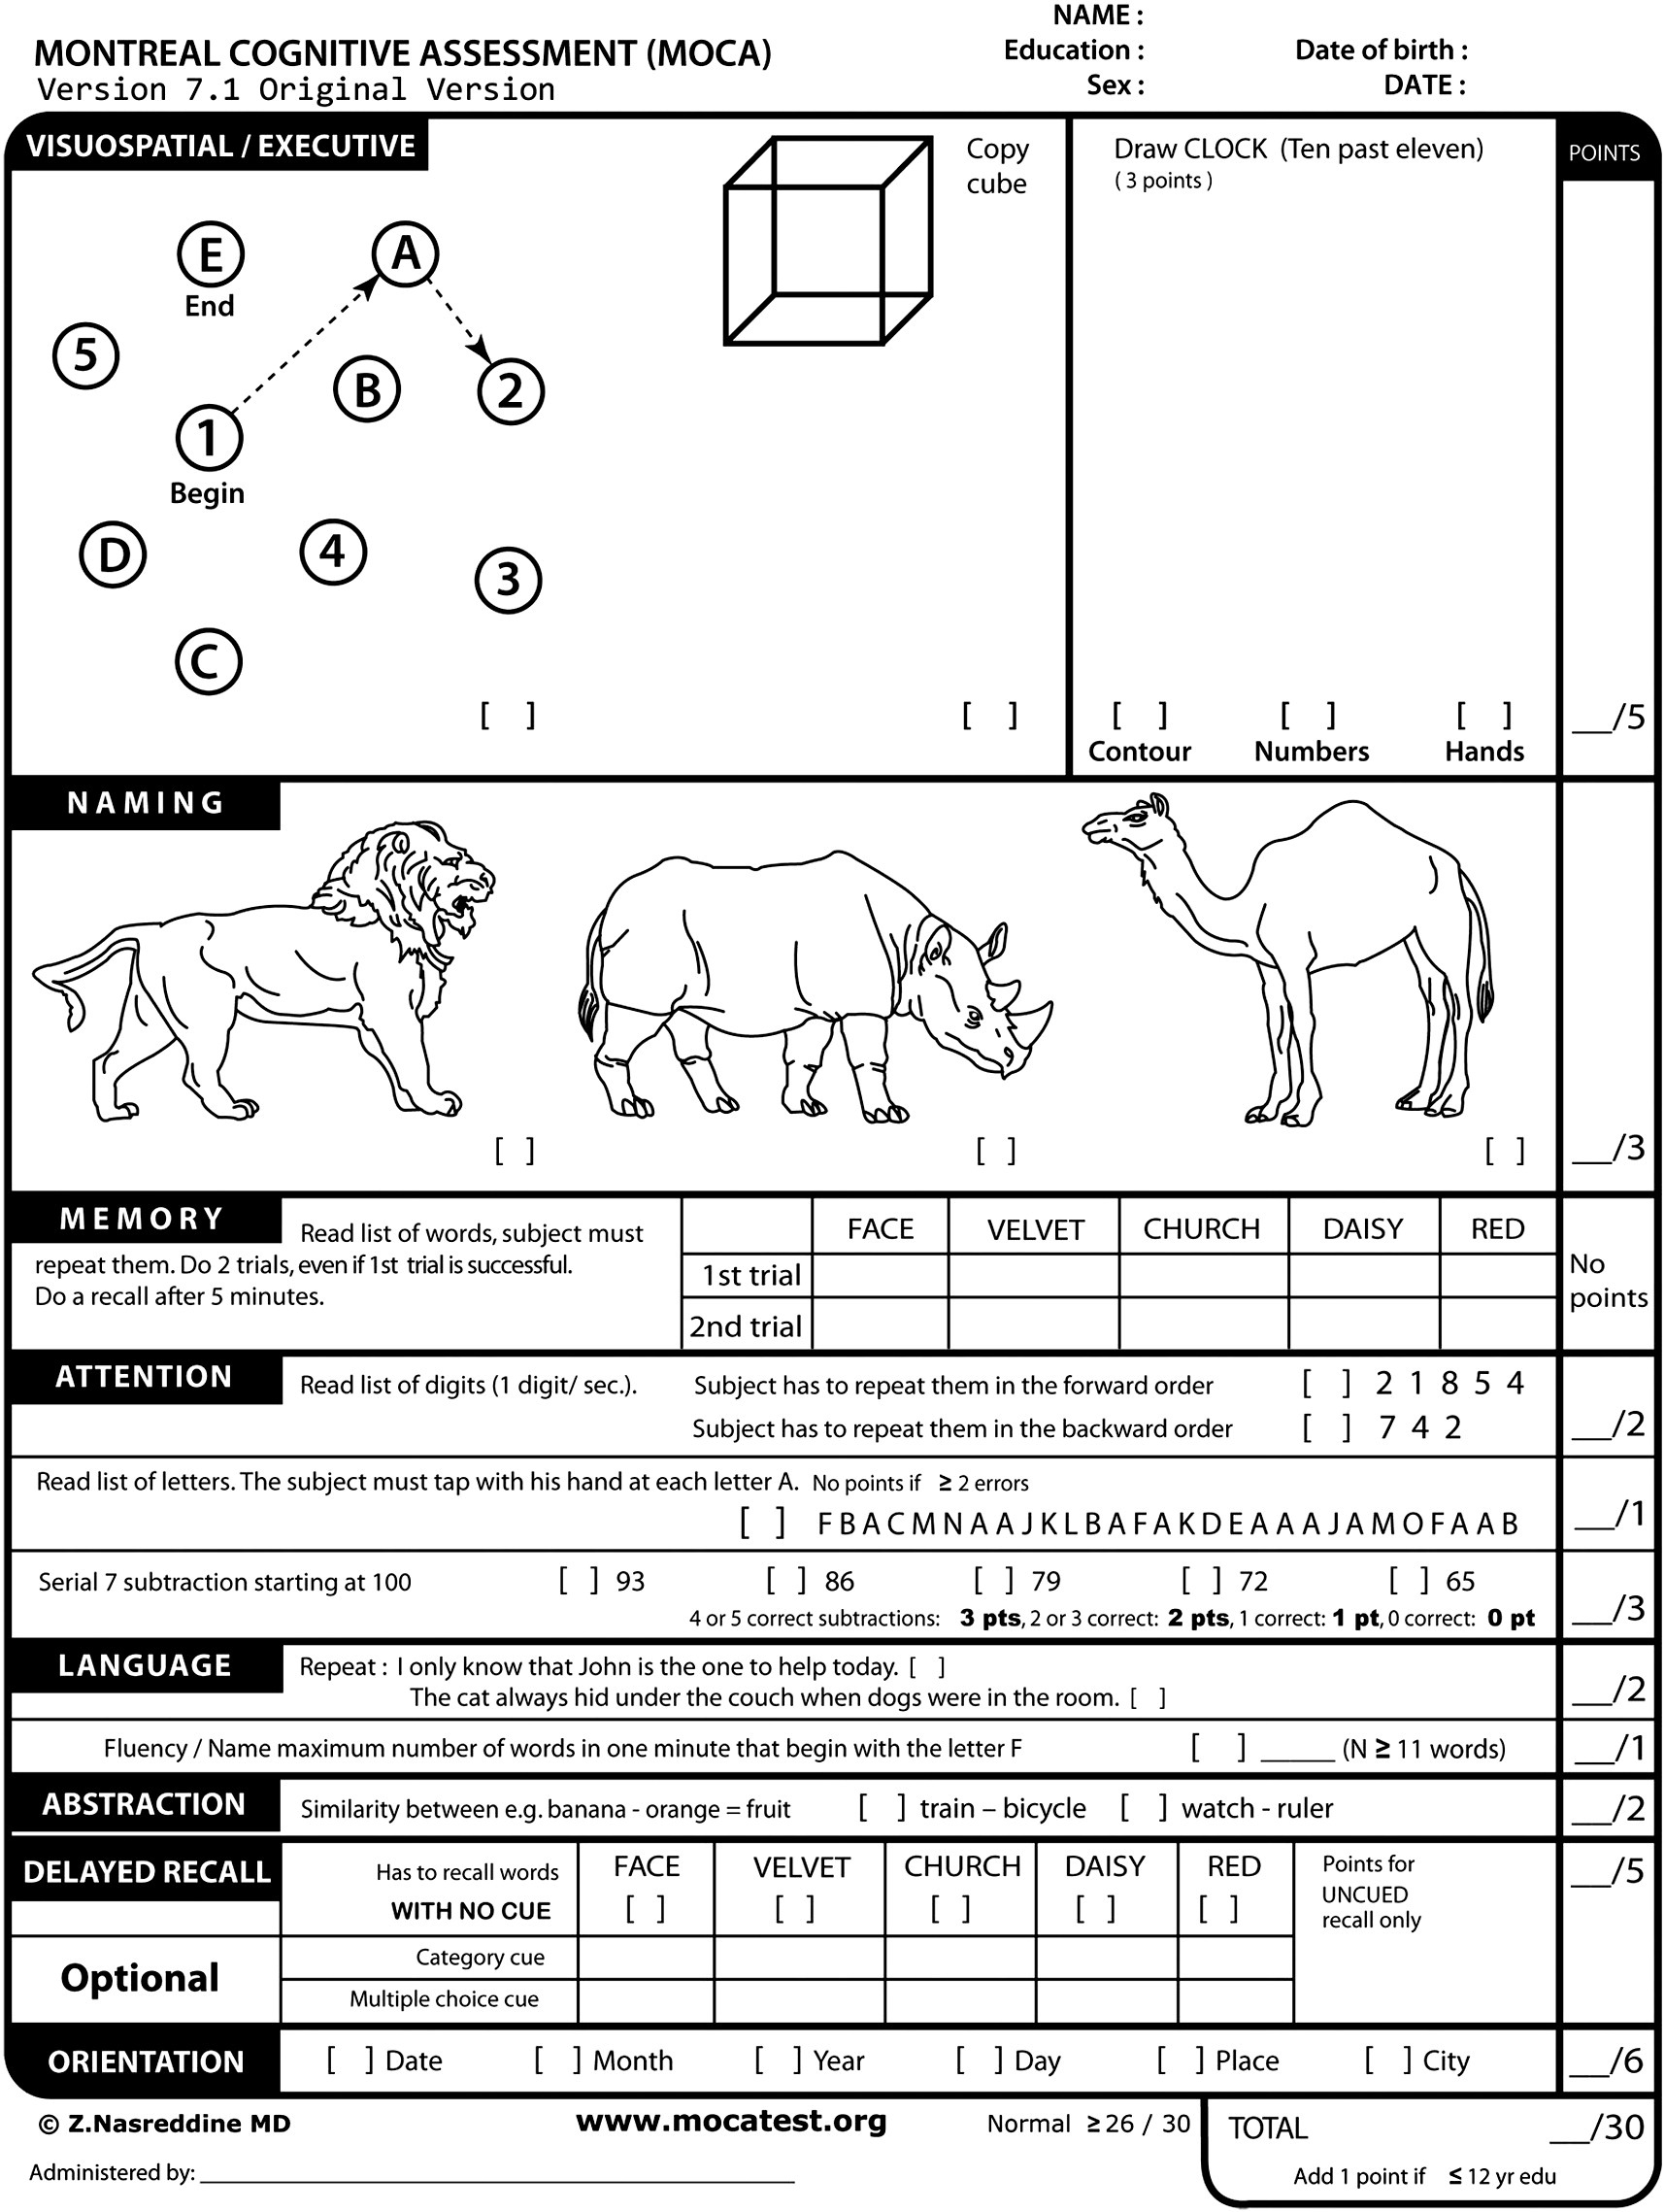 Supplemental Materials For Implementing The Use Of A Brief Cognitive Assessment On Individuals